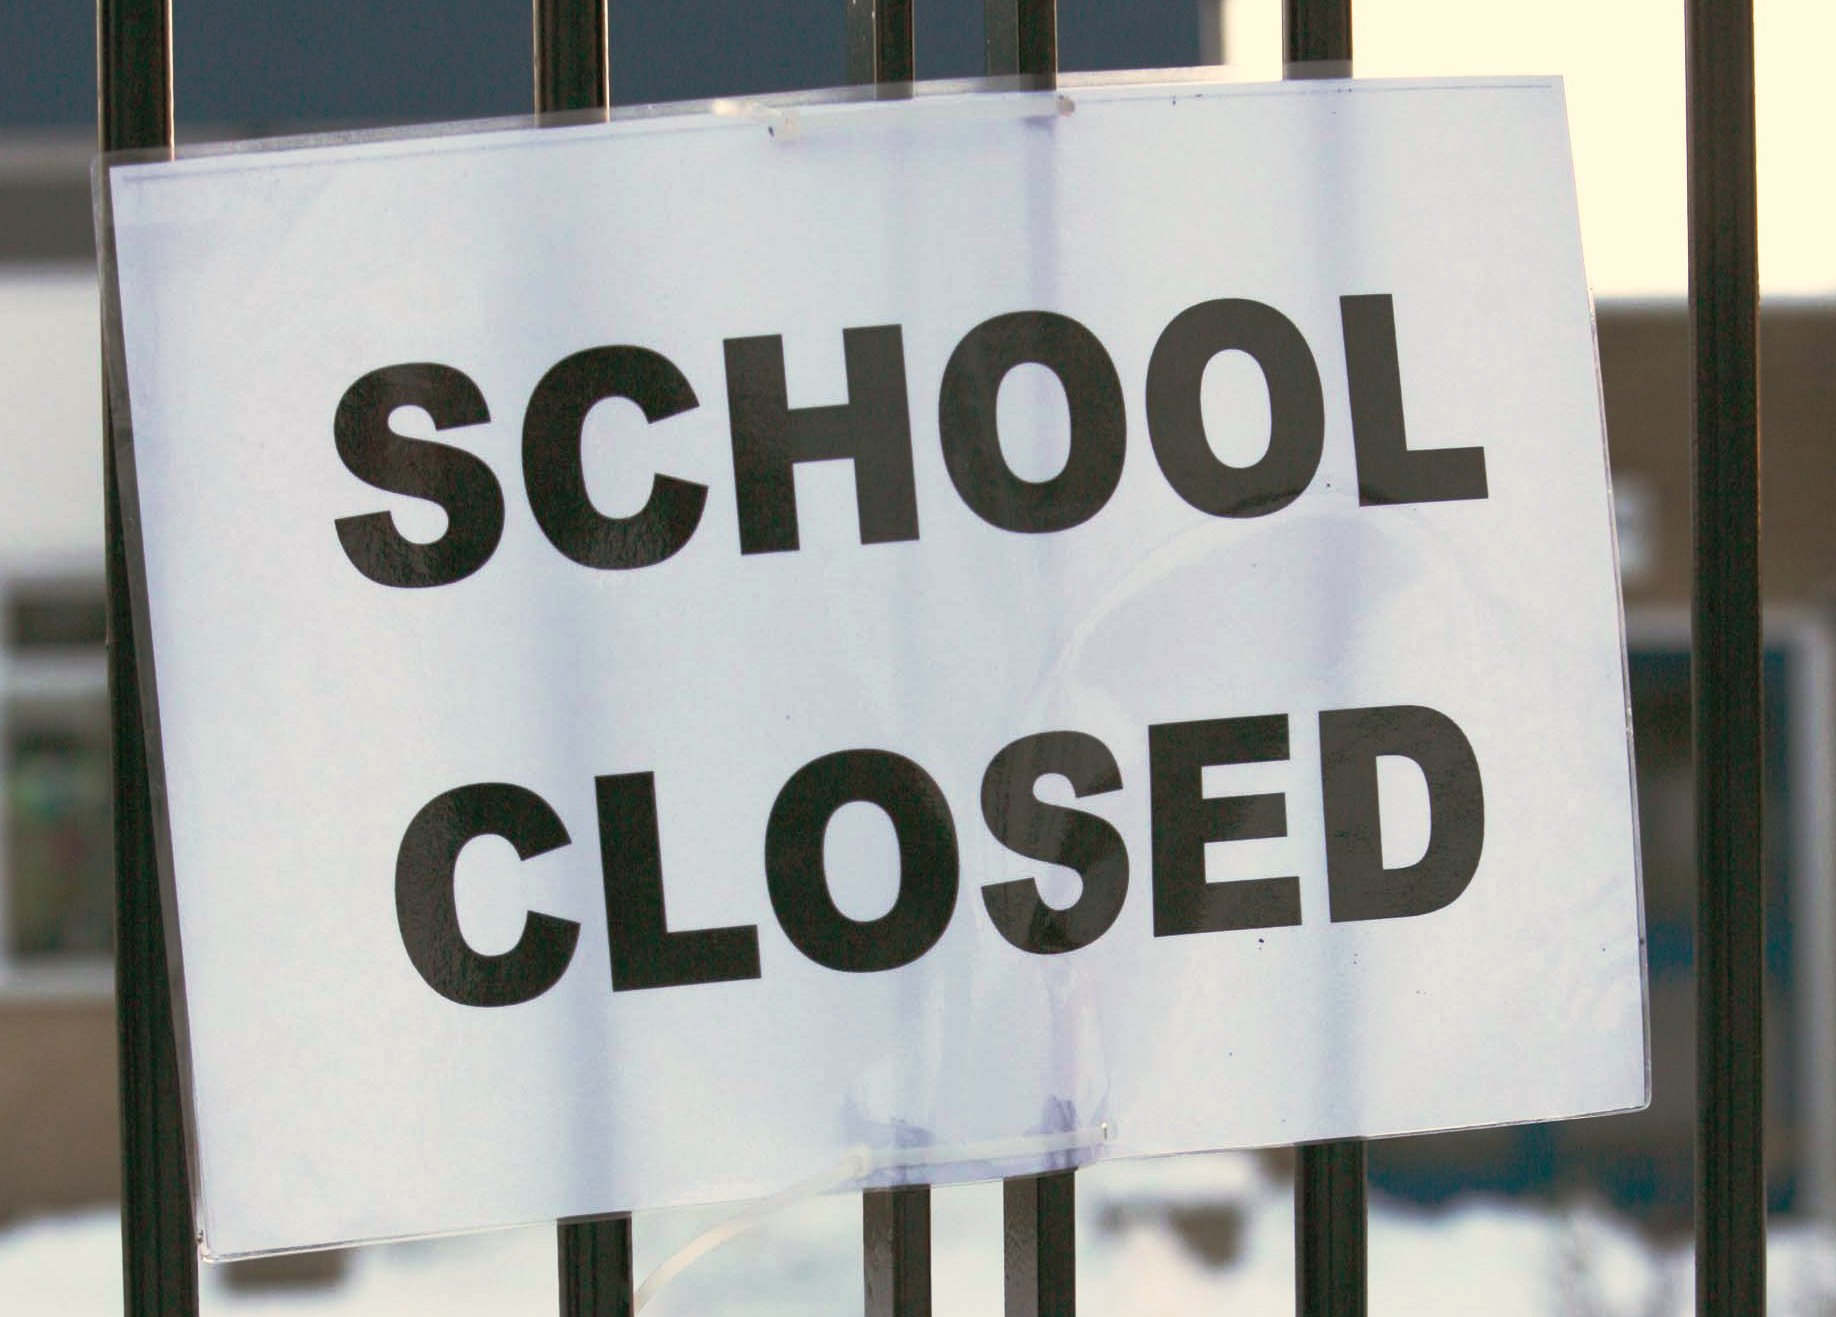 Scottish Borders latest school closures: Monday, March 5